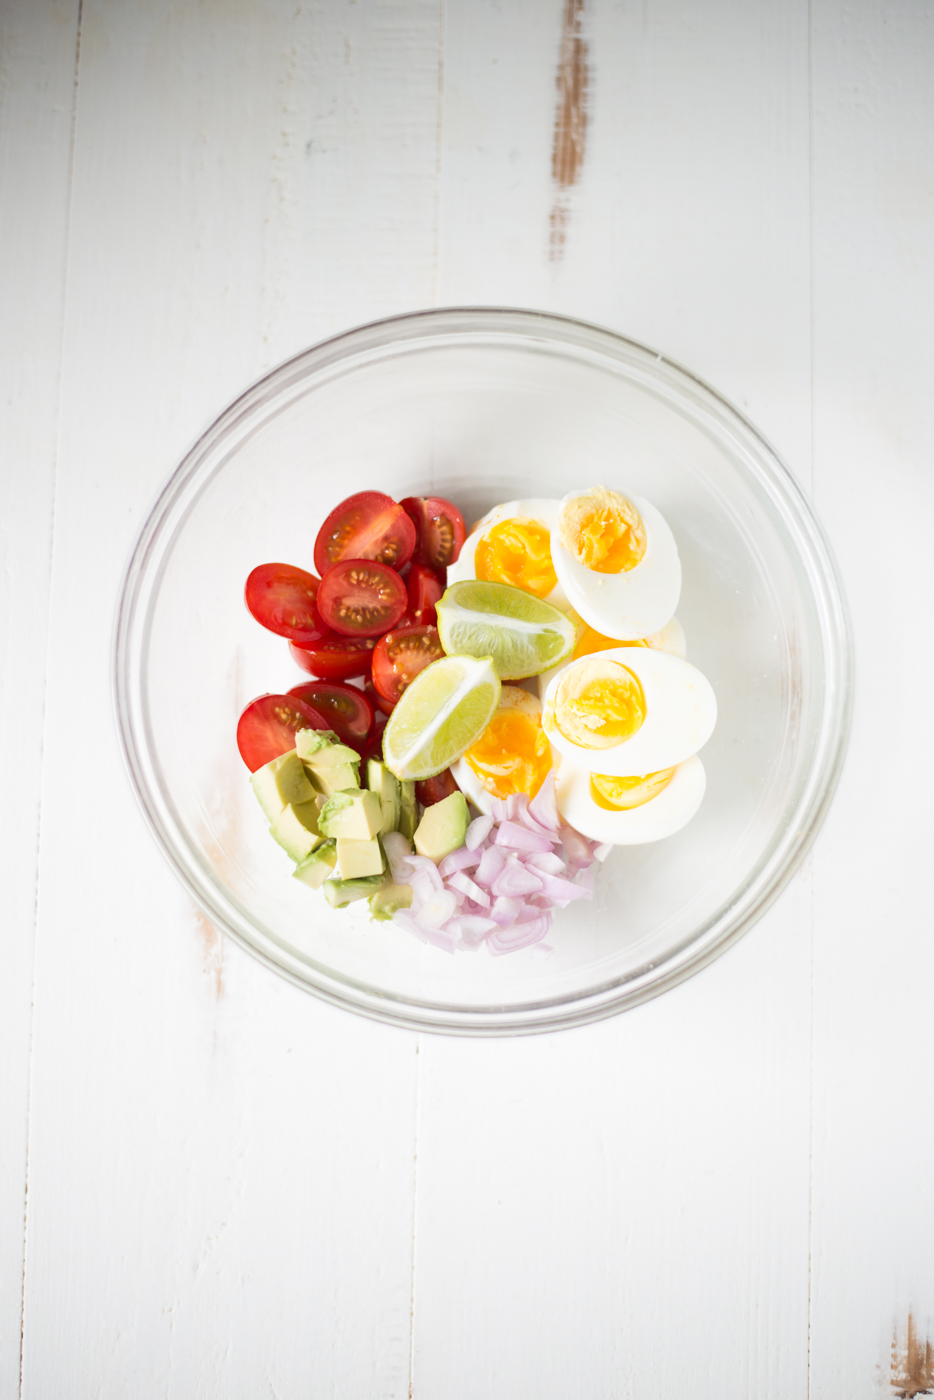 We're all about simplified meal prep around here, so today we're sharing prep ahead, easy, healthy egg salad recipes. #realfoodwholelife #realfoodwholeliferecipe #glutenfree #glutenfreerecipe #dairyfree #dairyfreerecipe #healthy #healthyrecipe #easyrecipe #quickrecipe #cleaneating #eggsalad #mayofree #mealprep